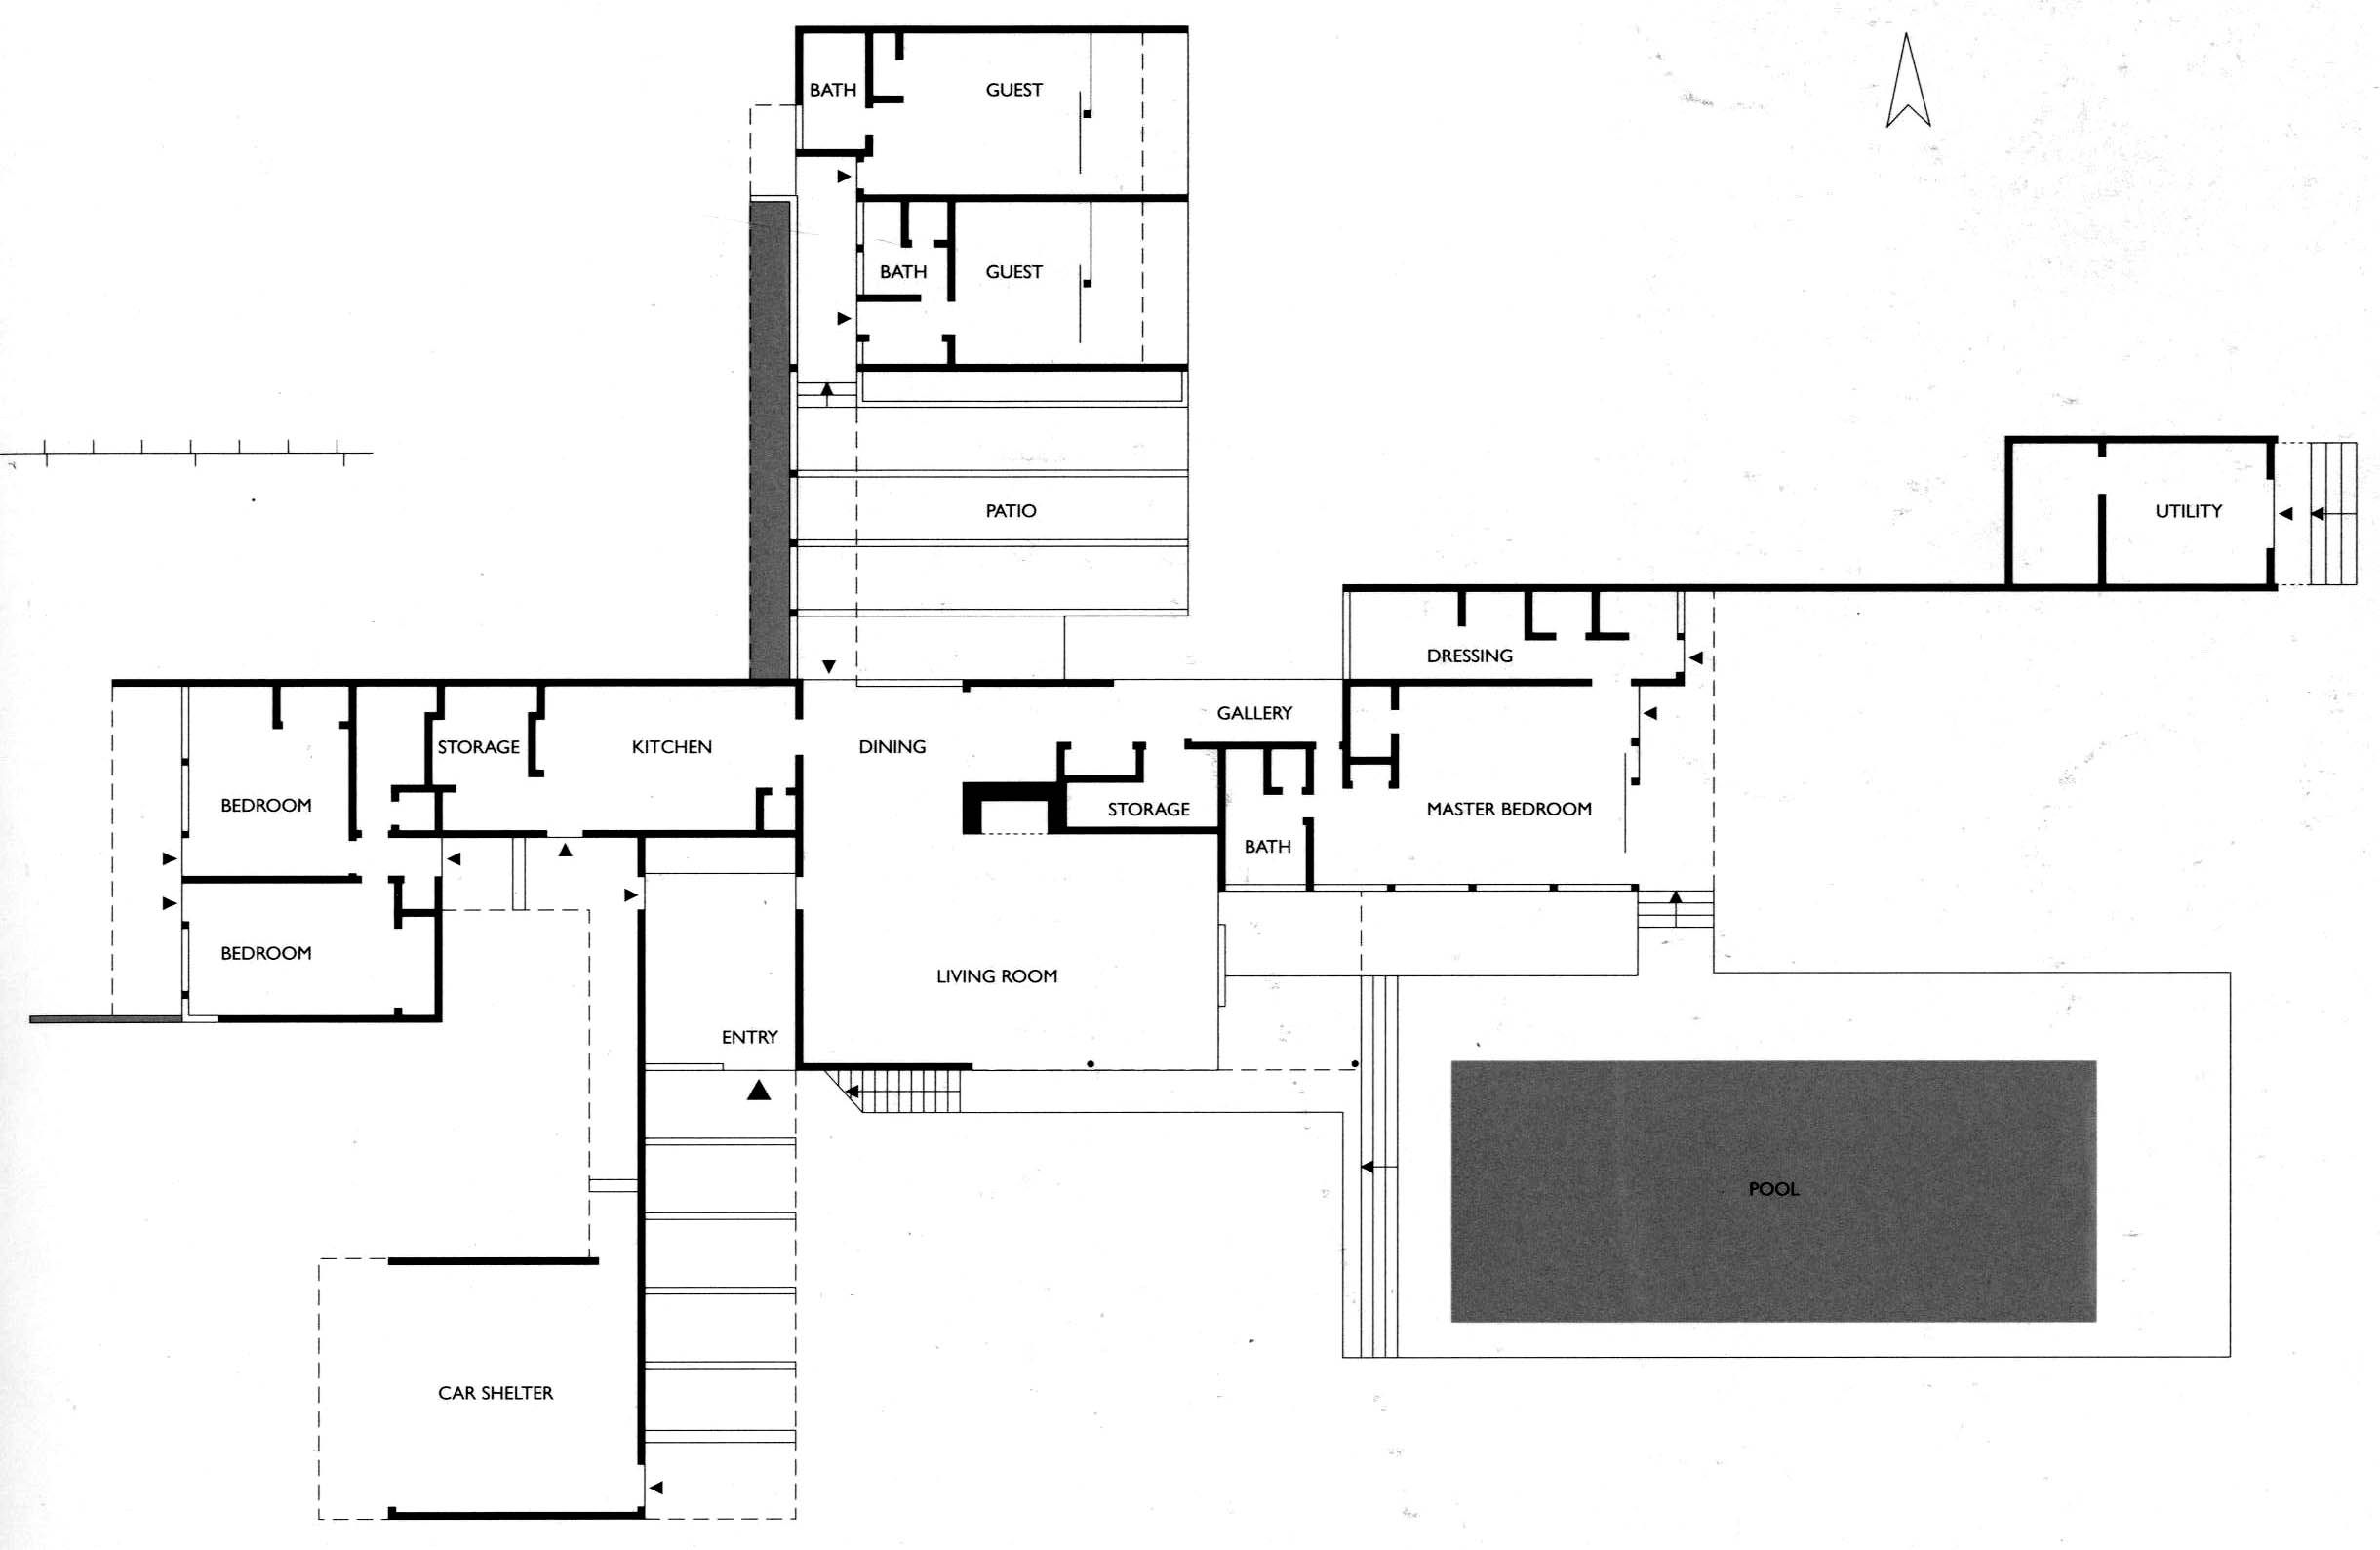 kaufmann desert house richard neutra 1946 the home On kaufmann desert house floor plan